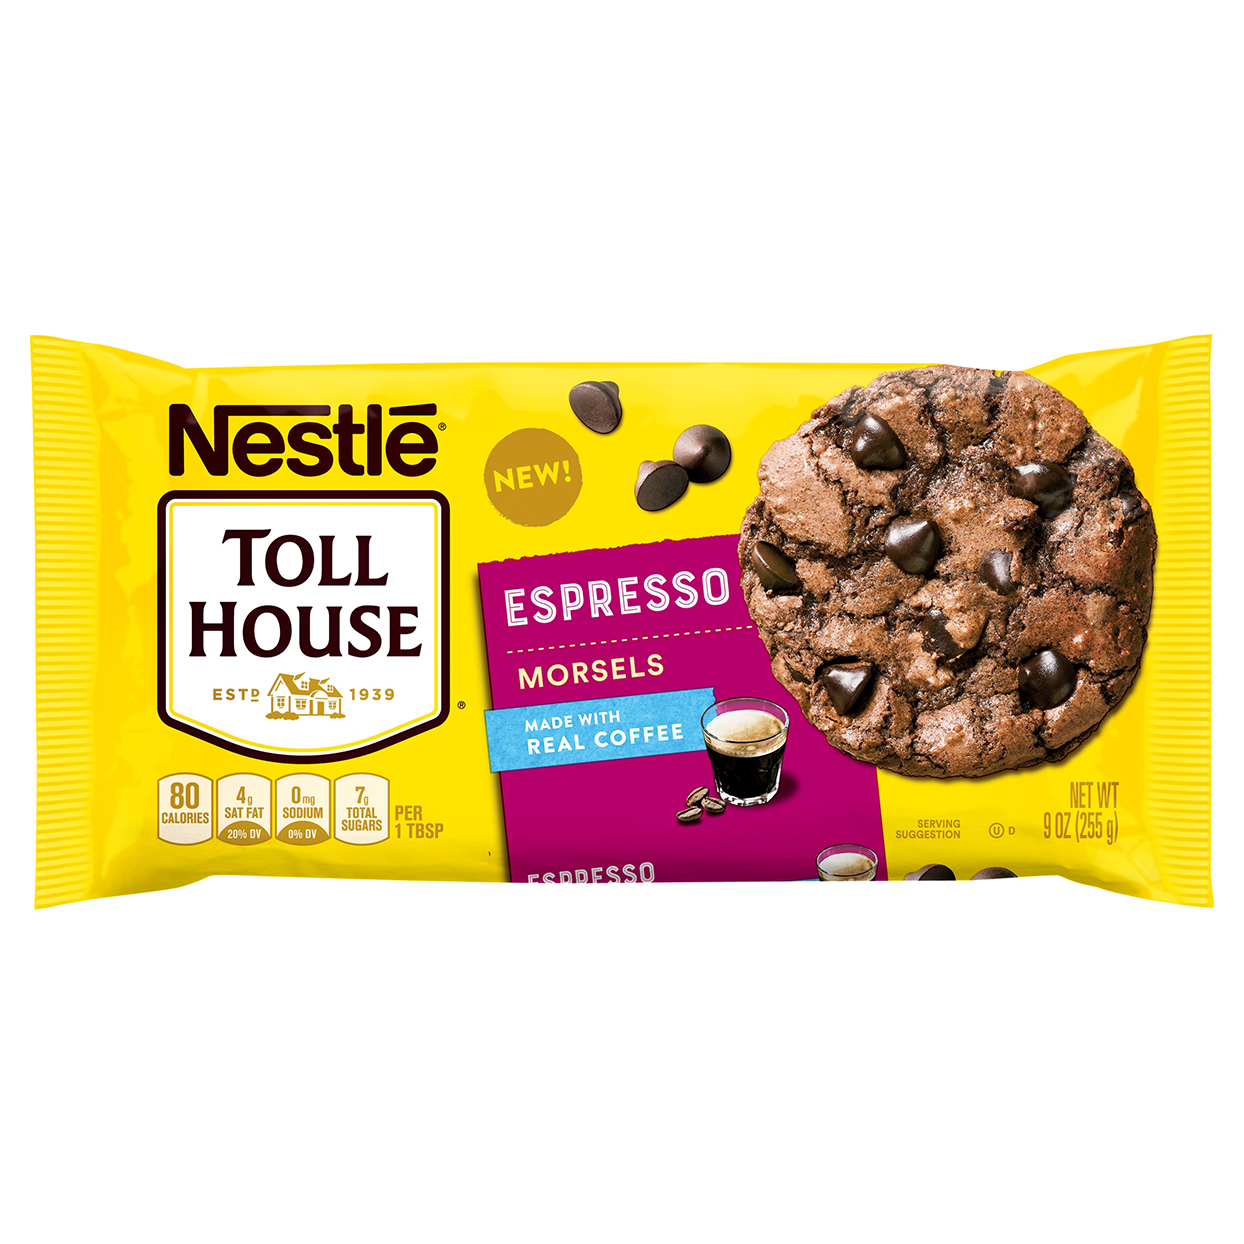 Bag of Nestle Espresso Morsels on white background